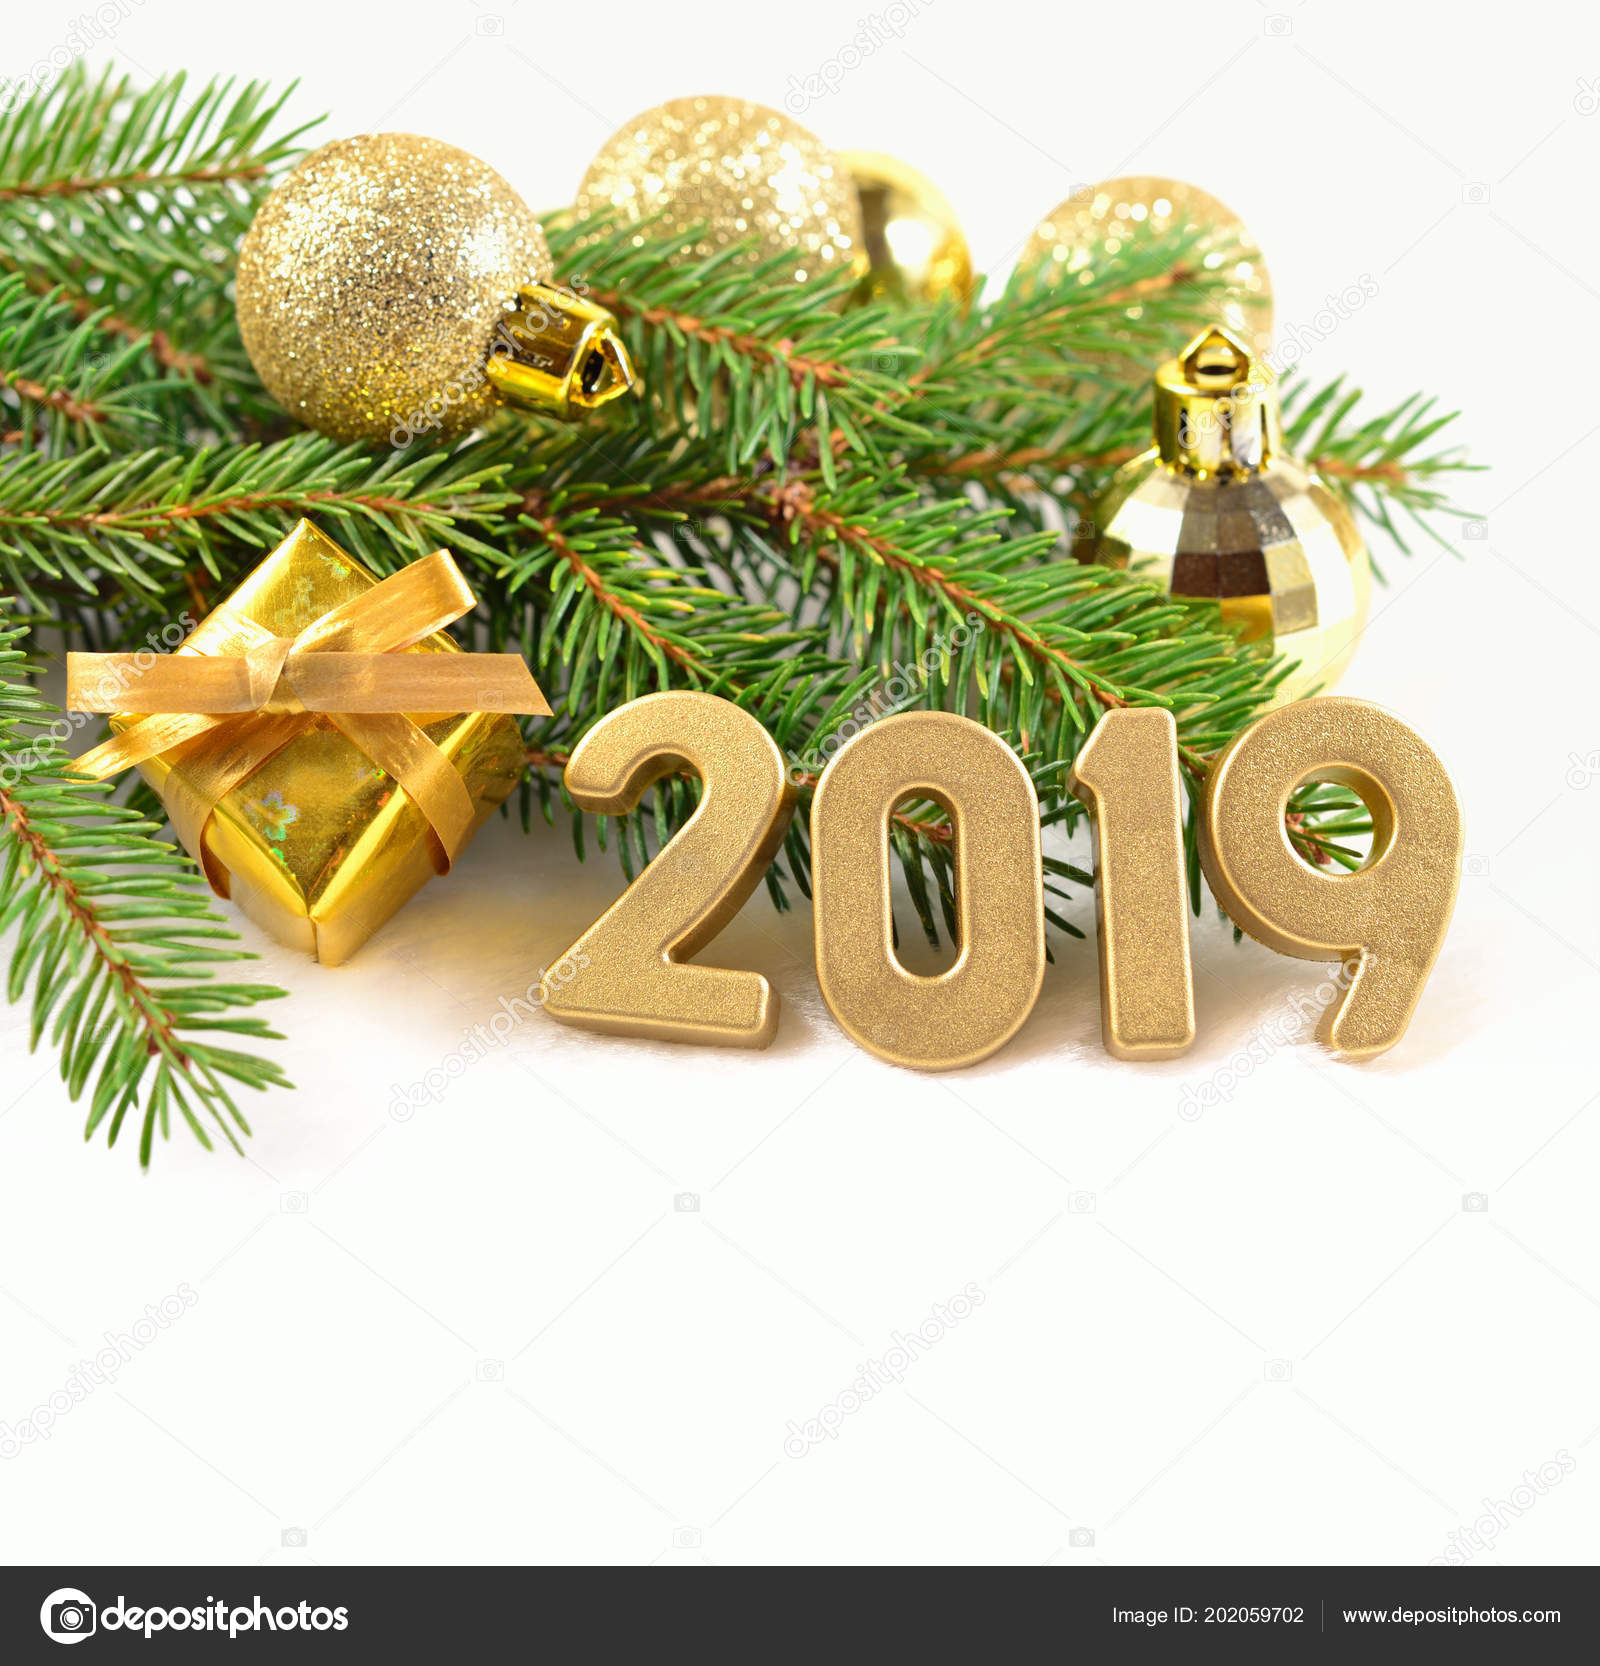 2019 Year Golden Figures And Spruce Branch And Christmas Decorations